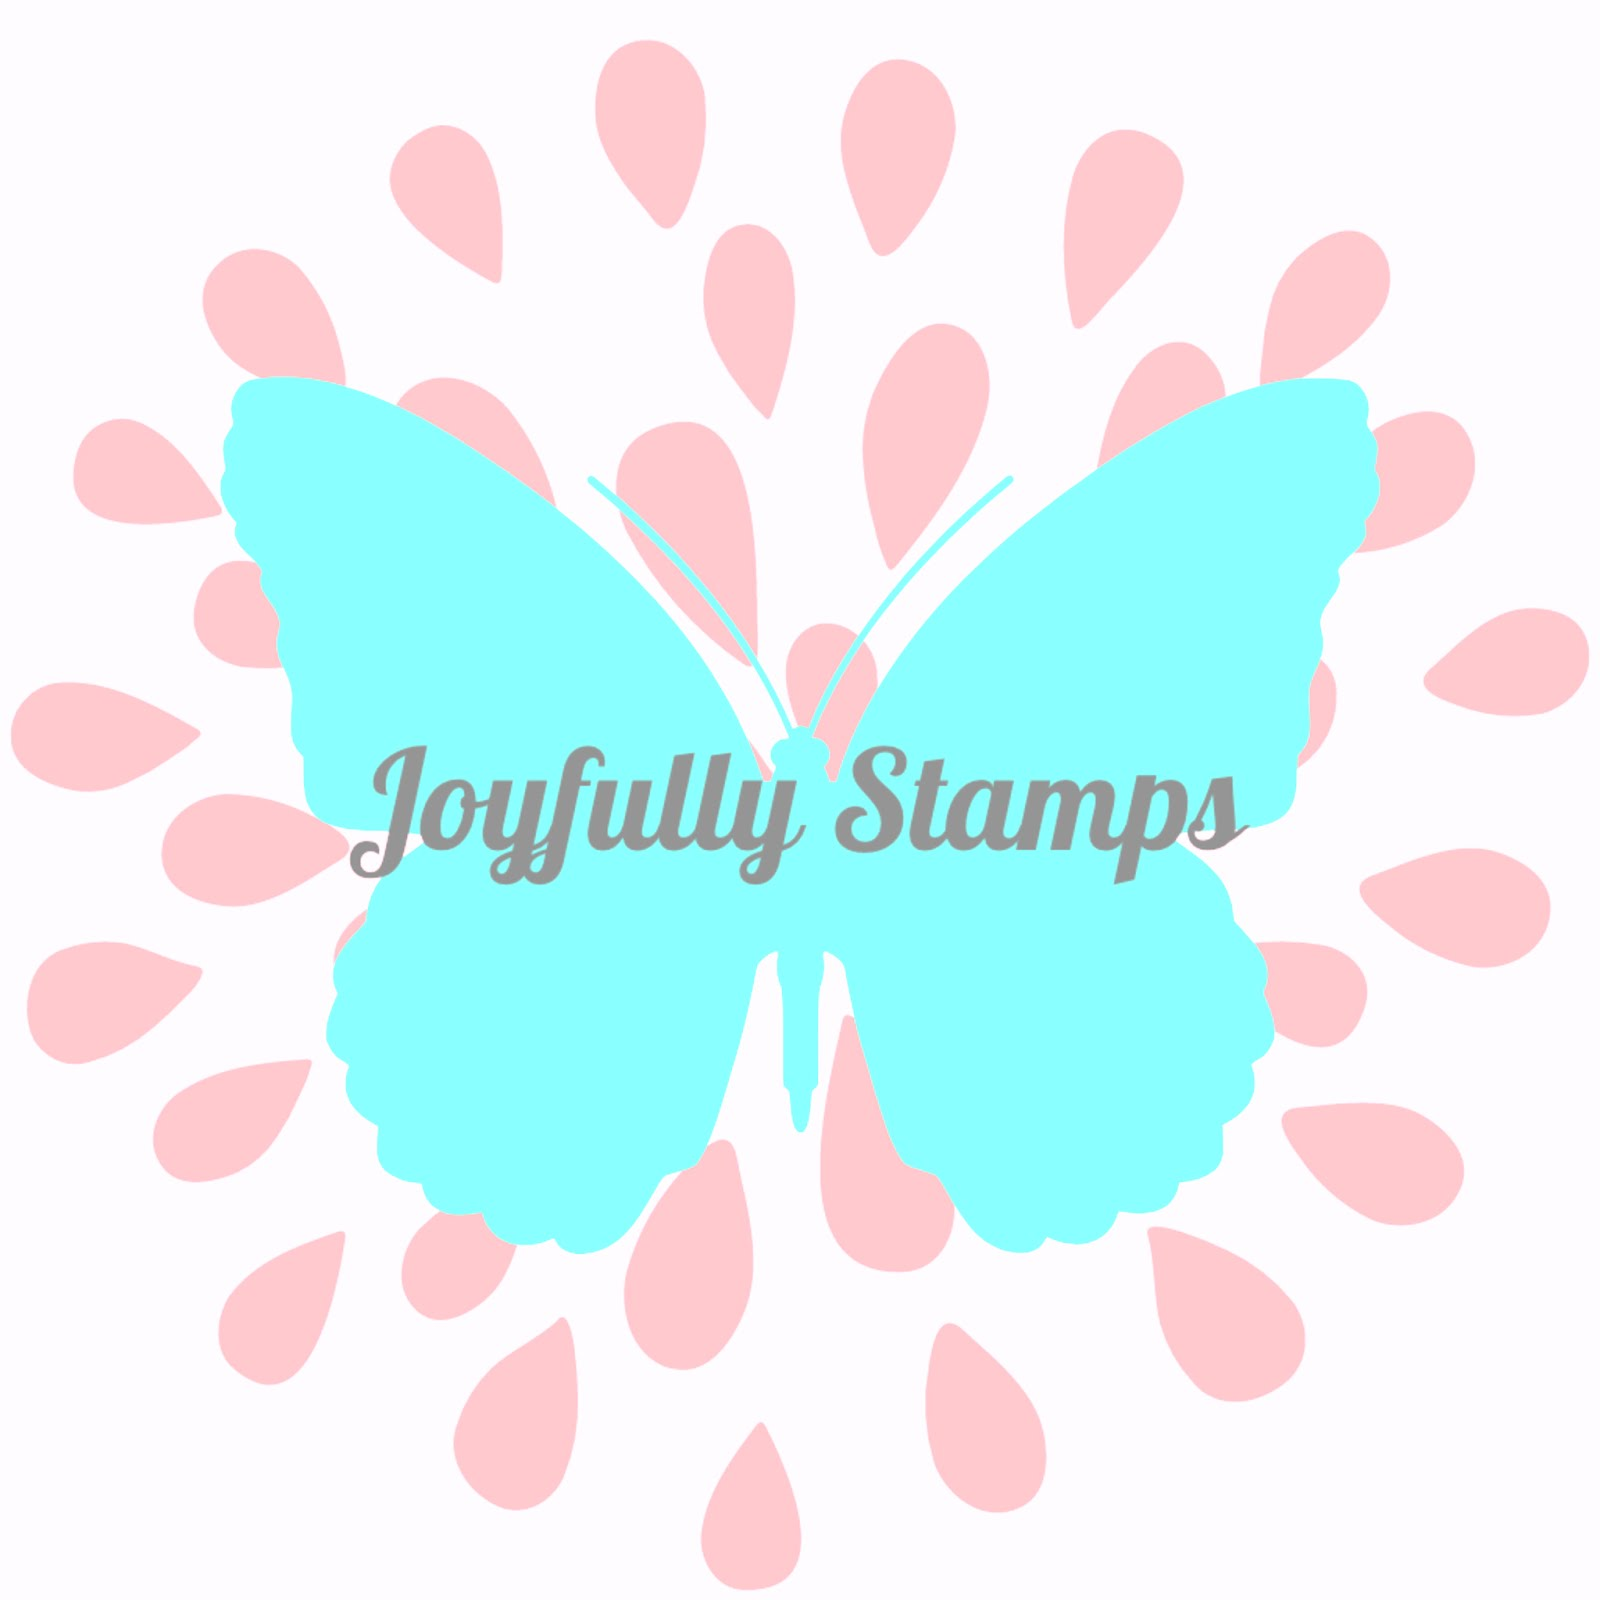 Joyfullystamps Shop